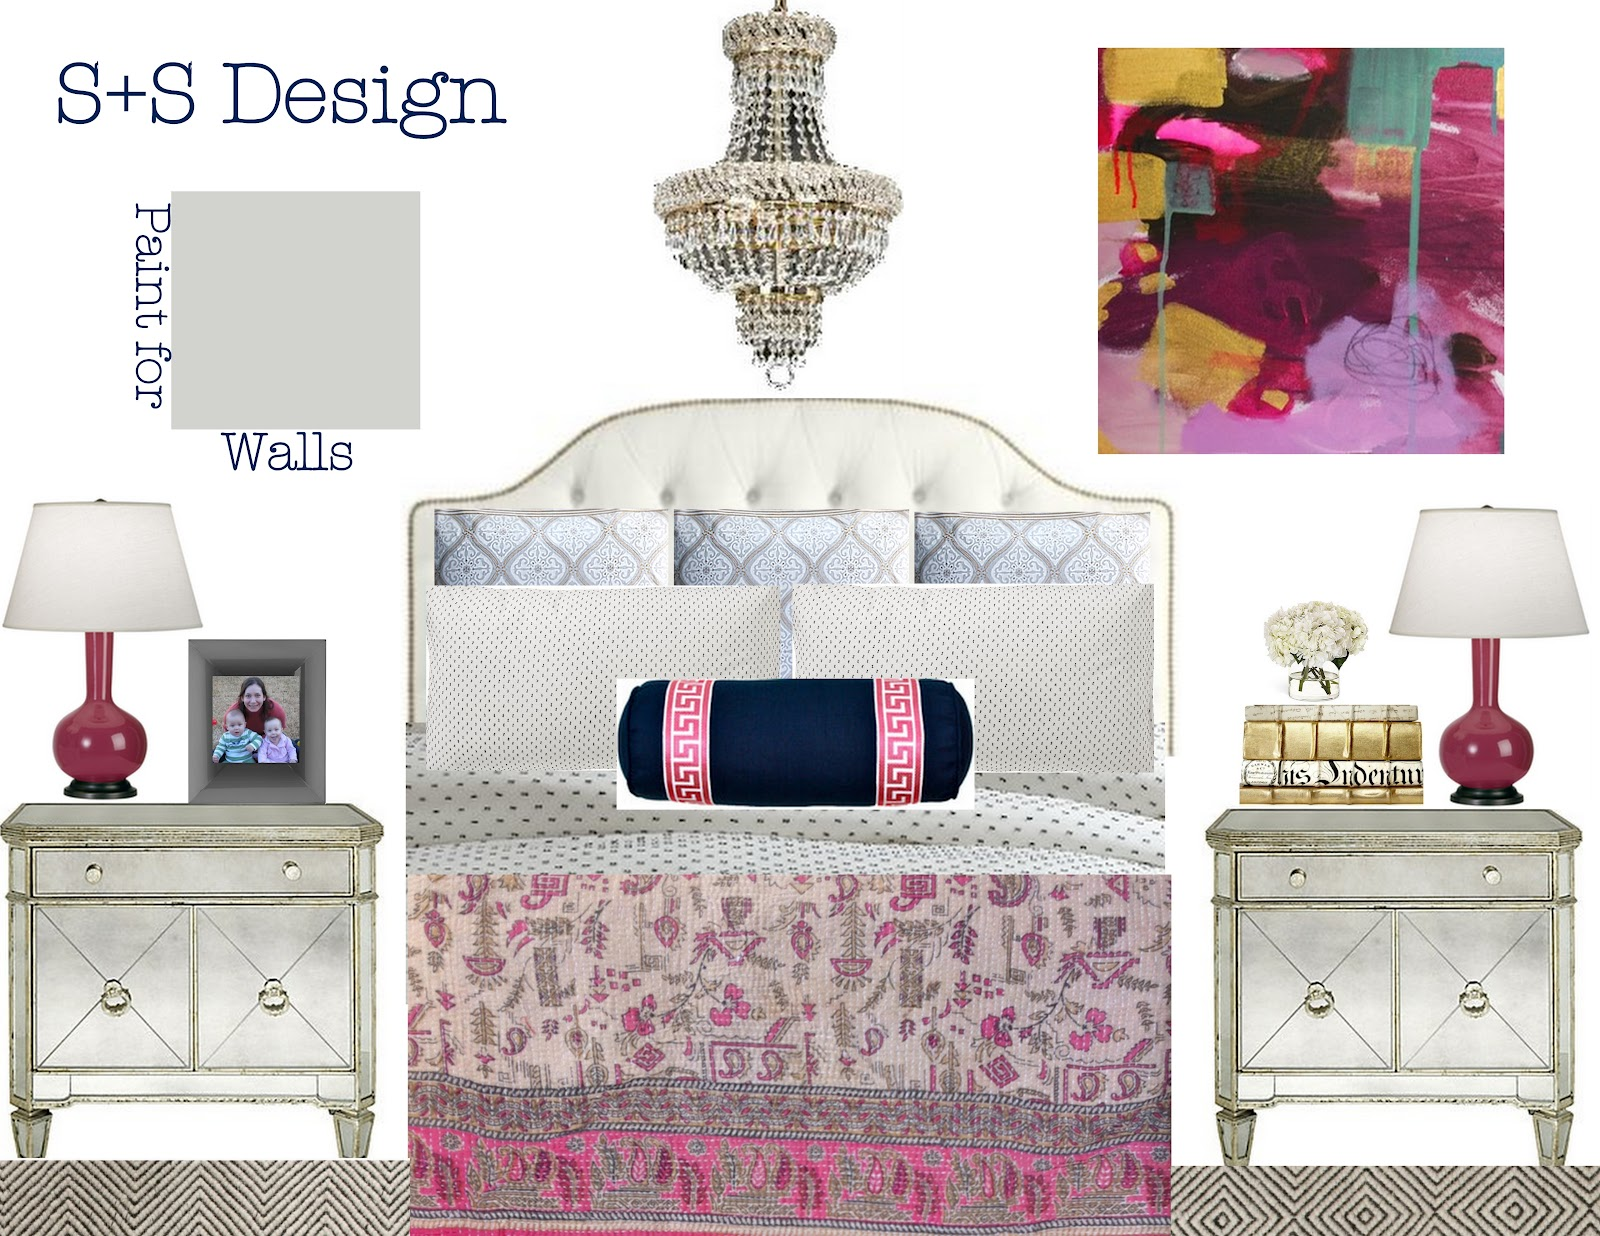 When She Mentioned Her Favorite Color Was Pink I Knew We Were Meant To Be As They Say Done And Here Are The Plans For Boho Glam Sanctuary